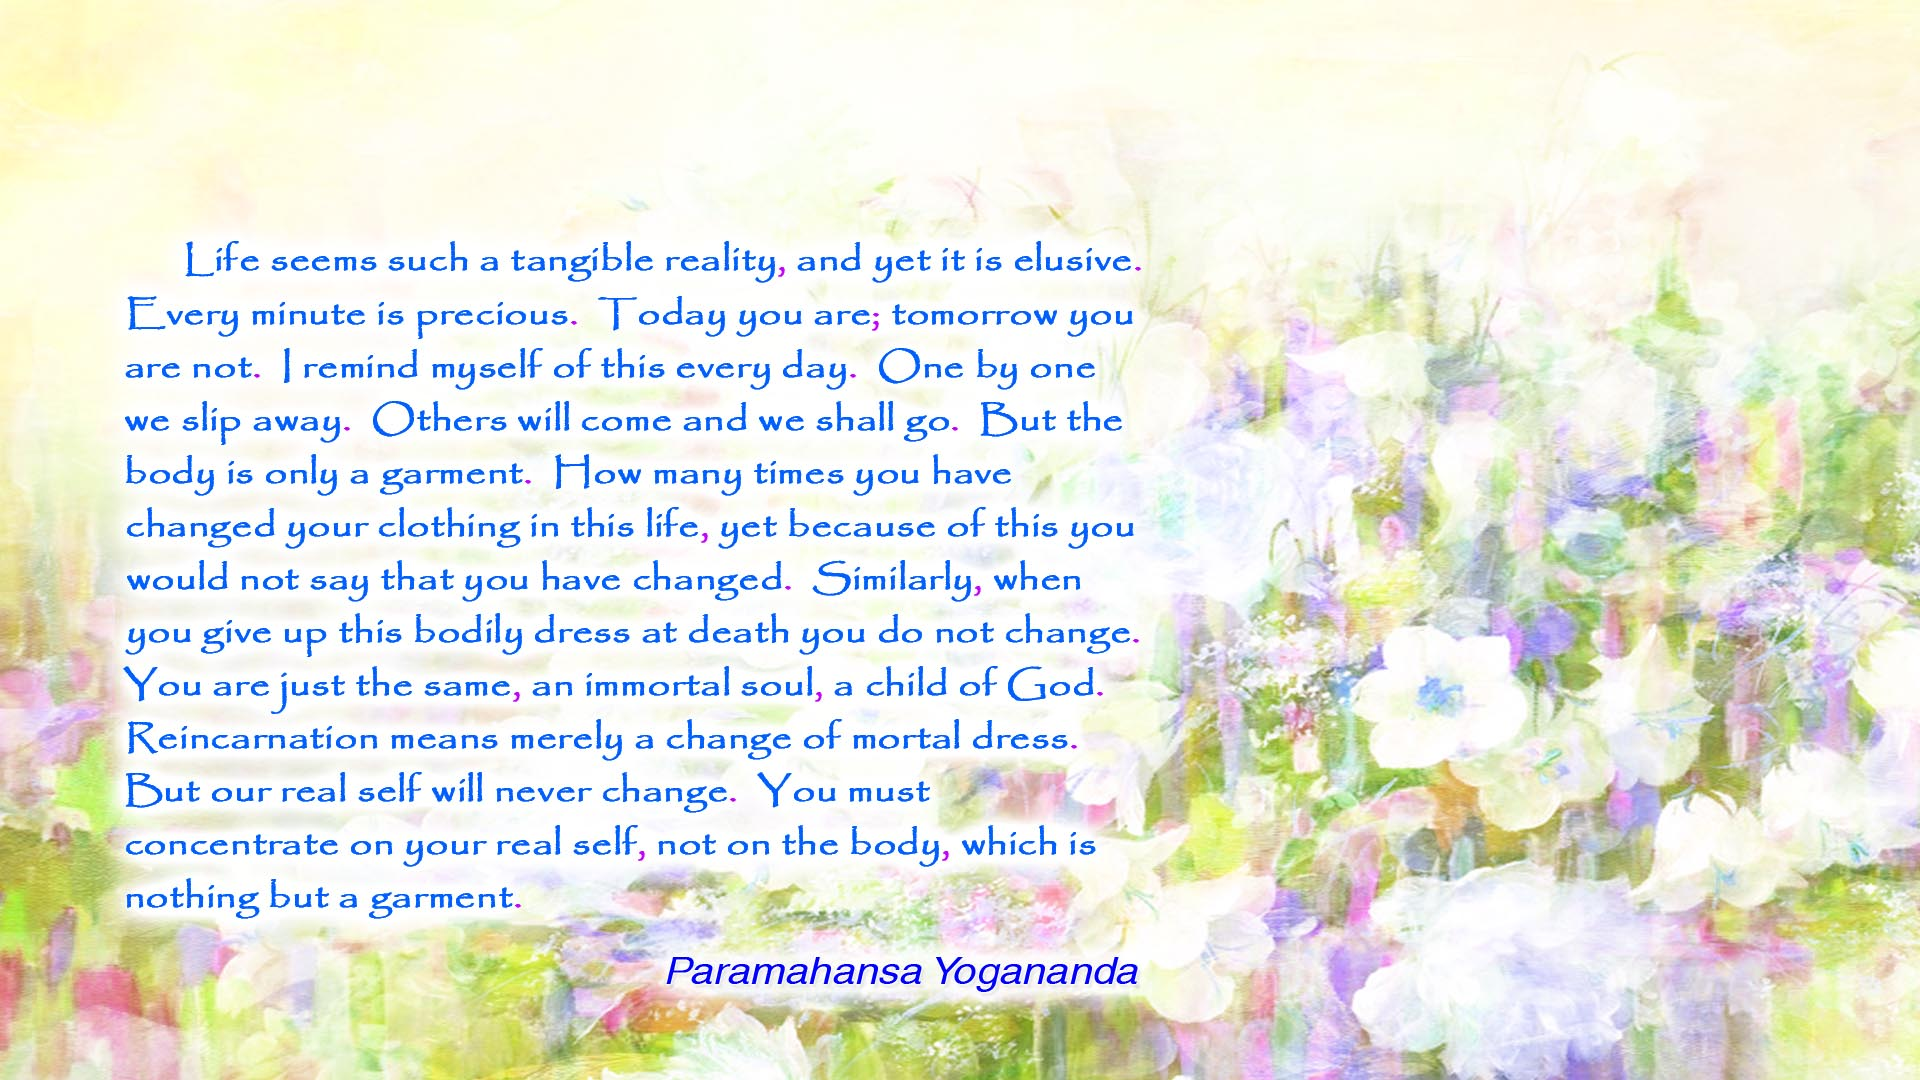 Yogananda body is a garment wallpaper